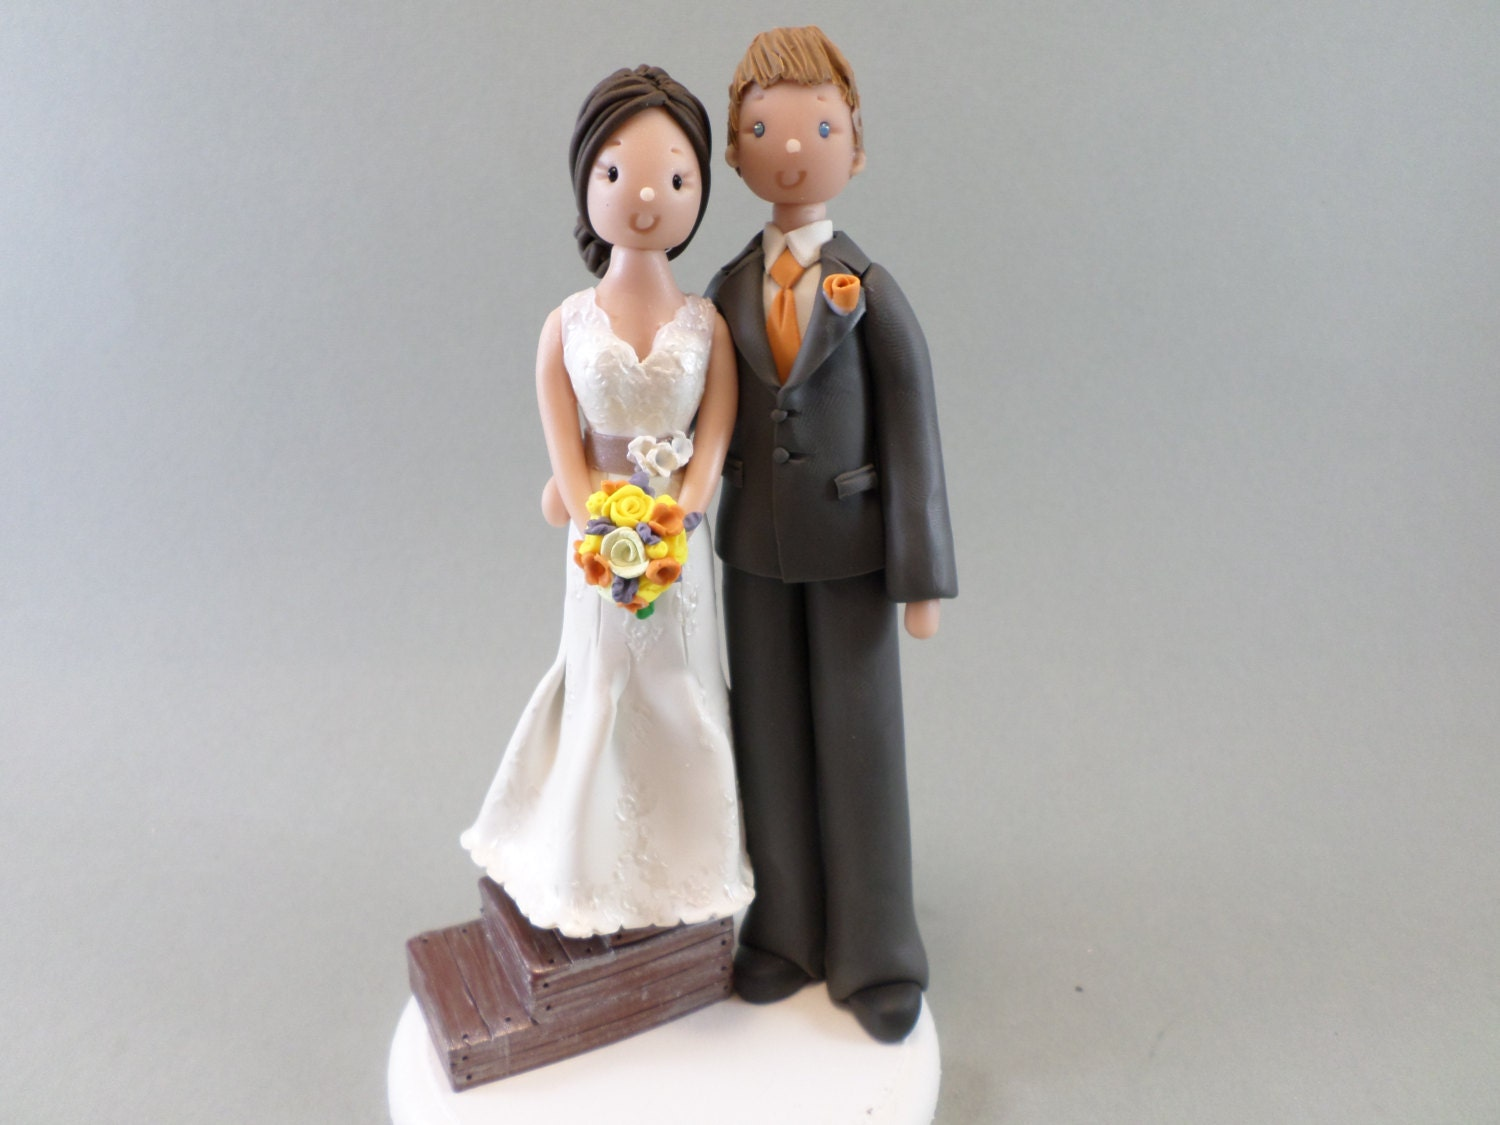 Short Bride & Tall Groom Personalized Wedding Cake Topper